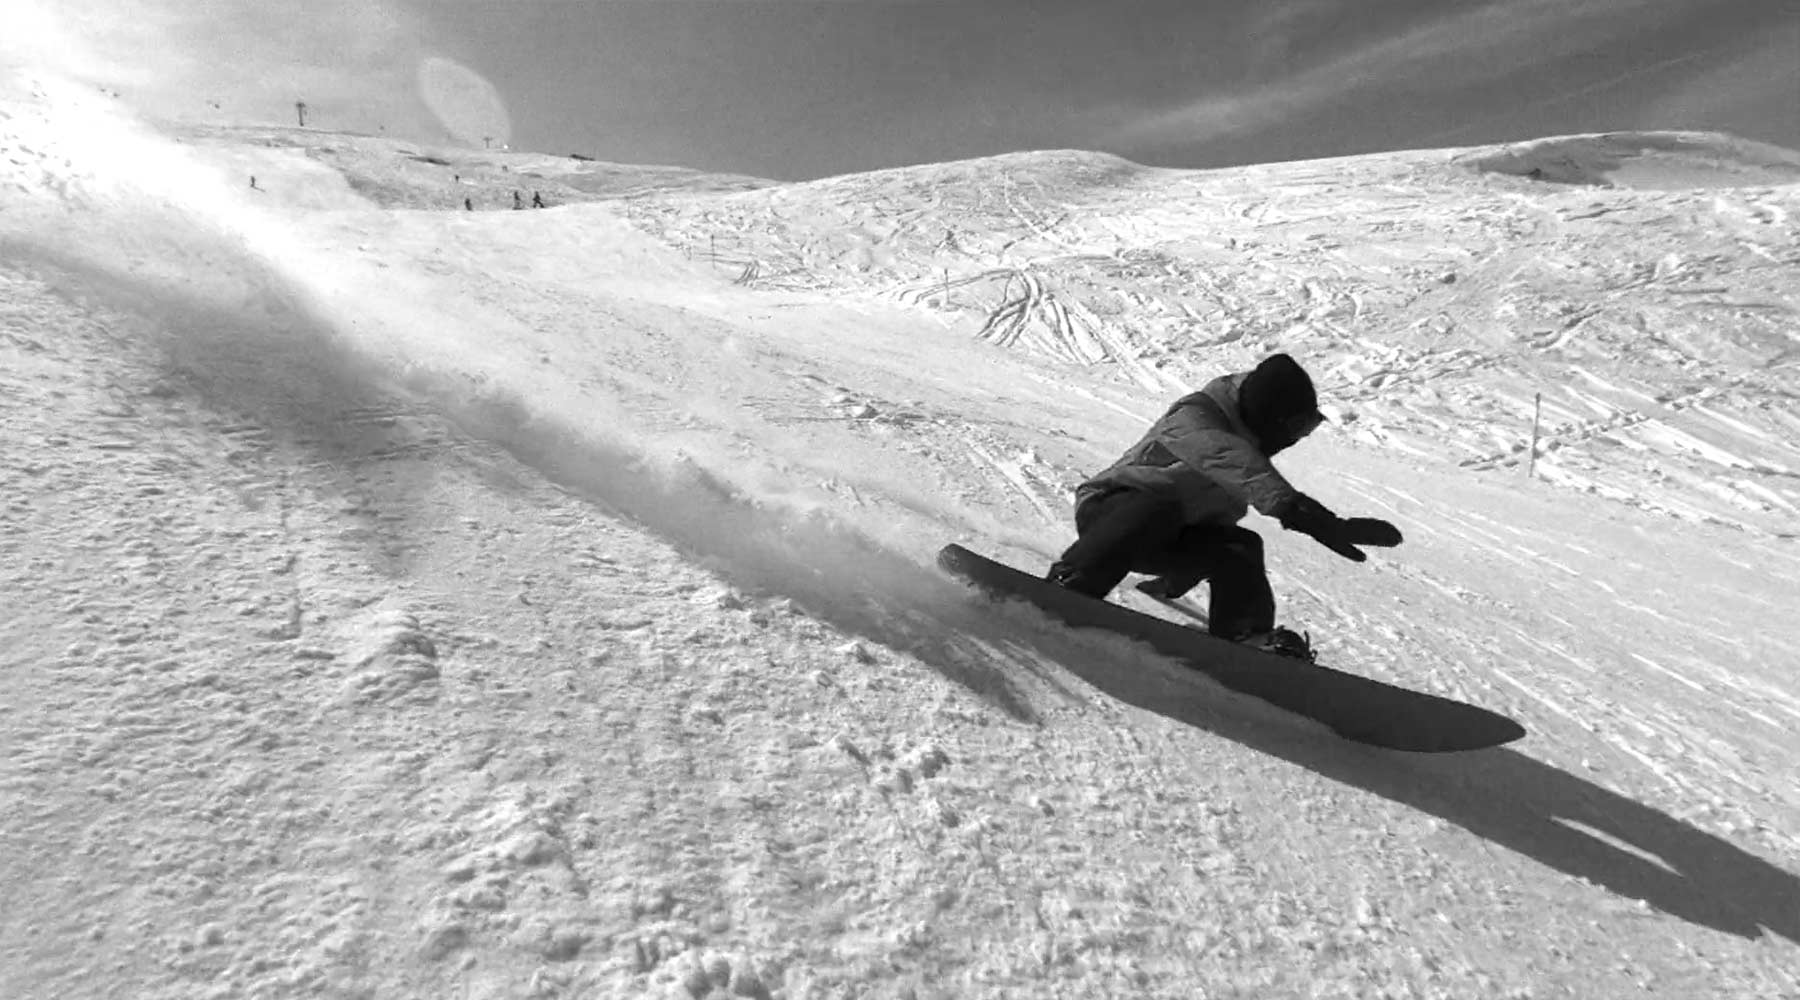 Snowboarding: Yearning for Turning I-VIII